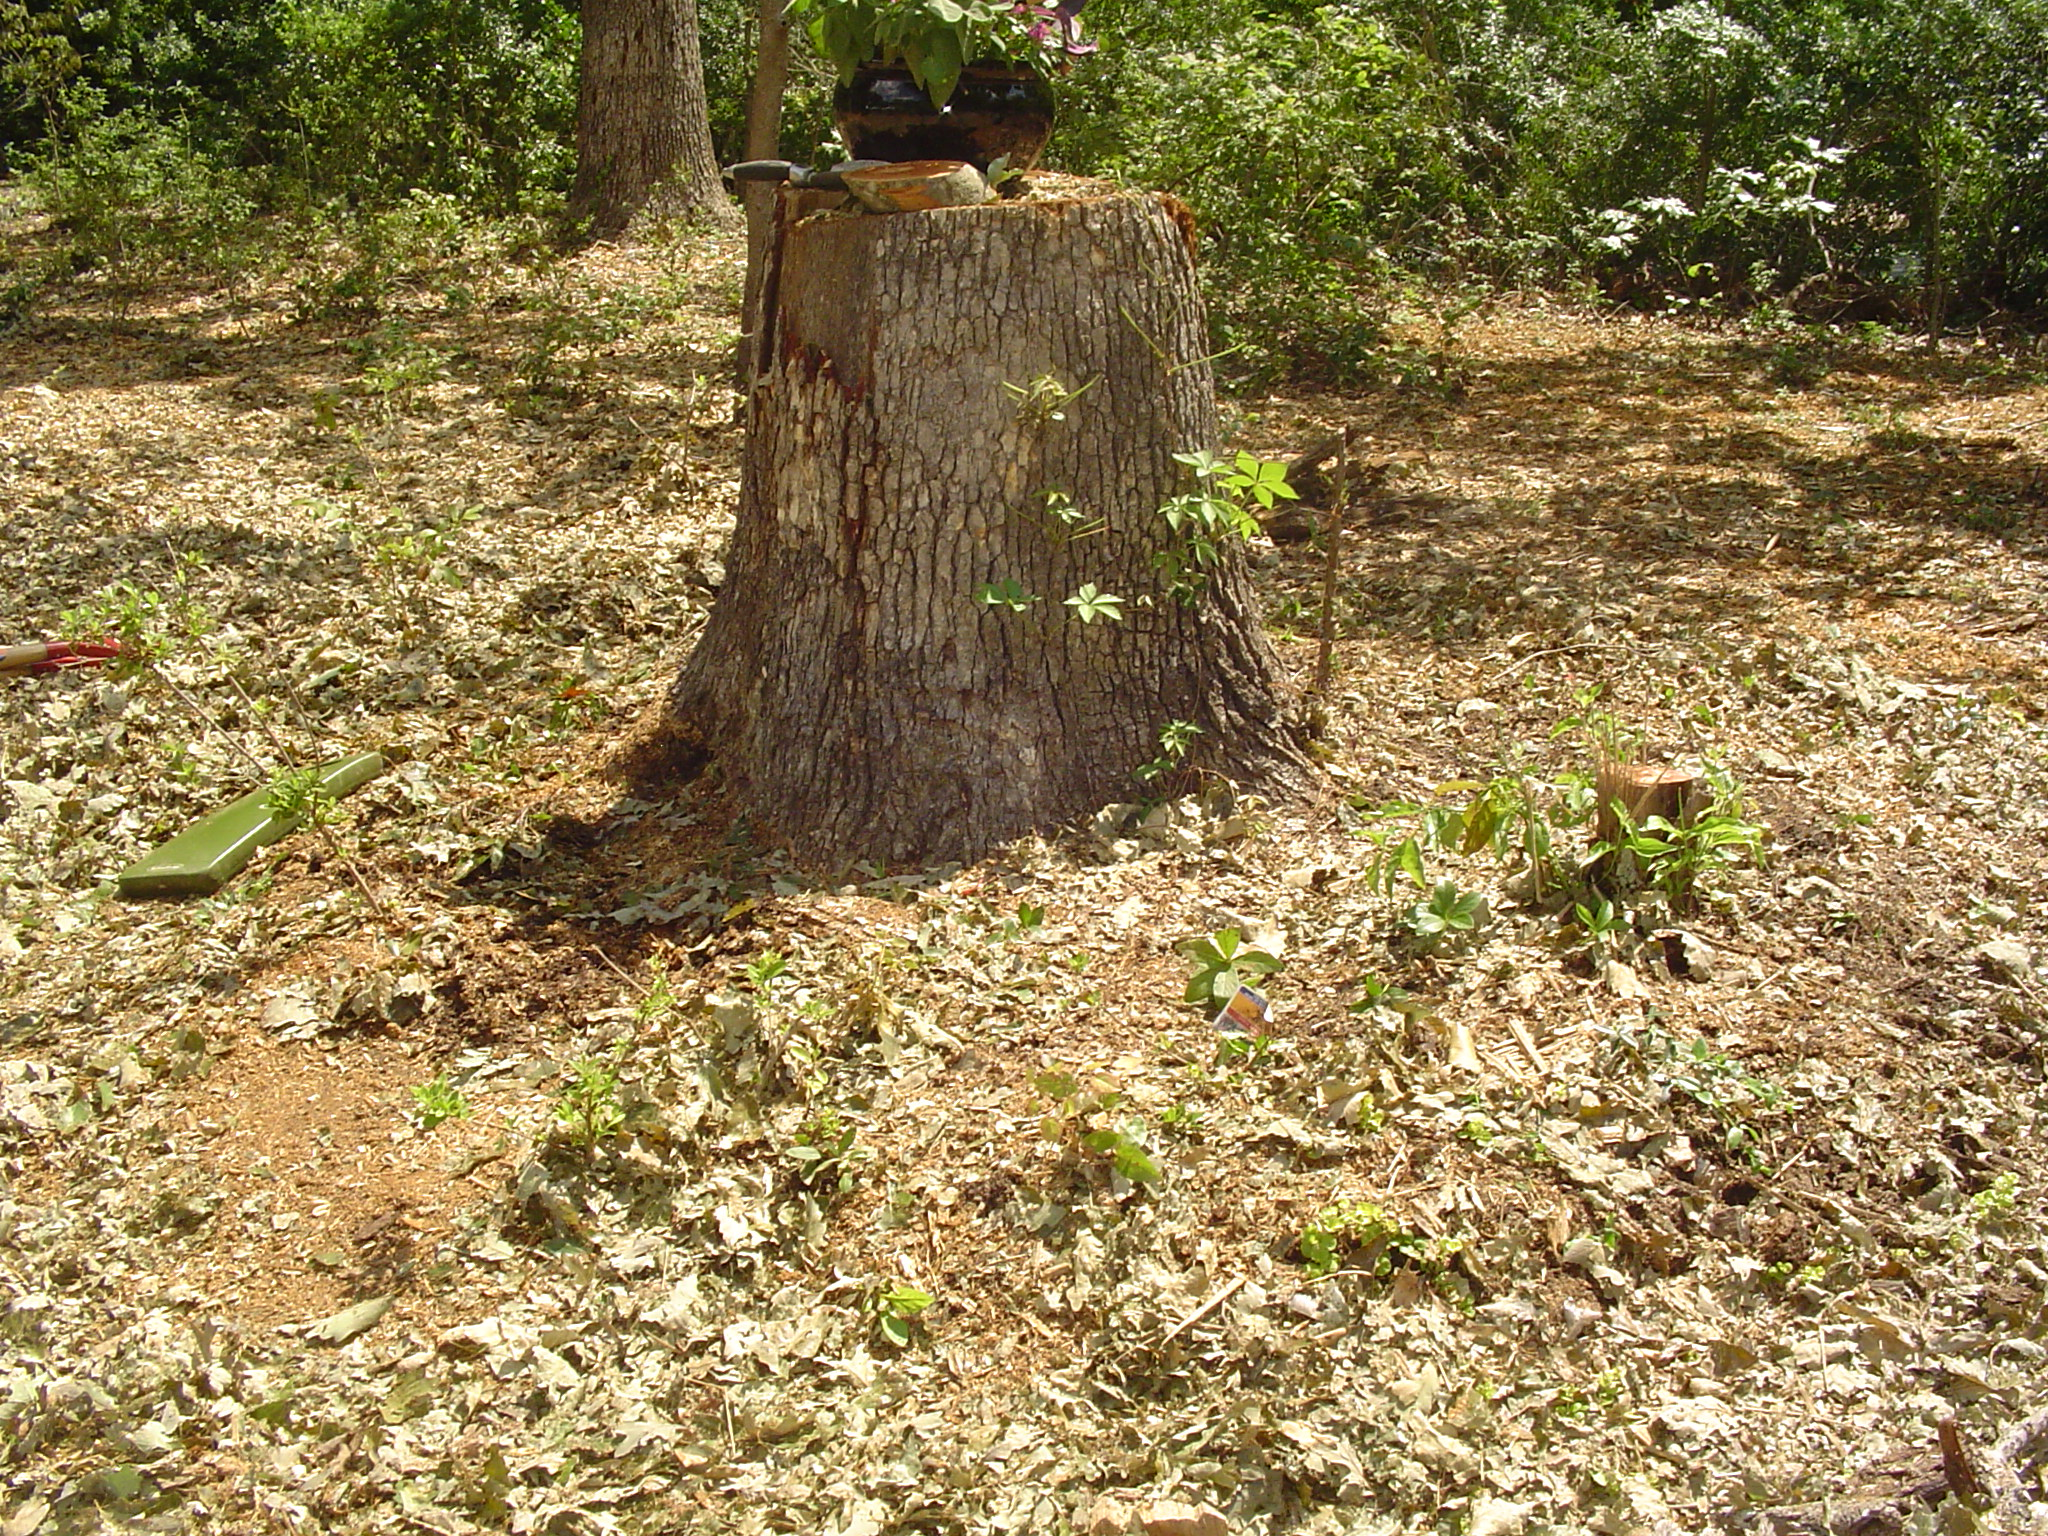 Time to begin again to build a productive raised bed around the stump of this beautiful oak.